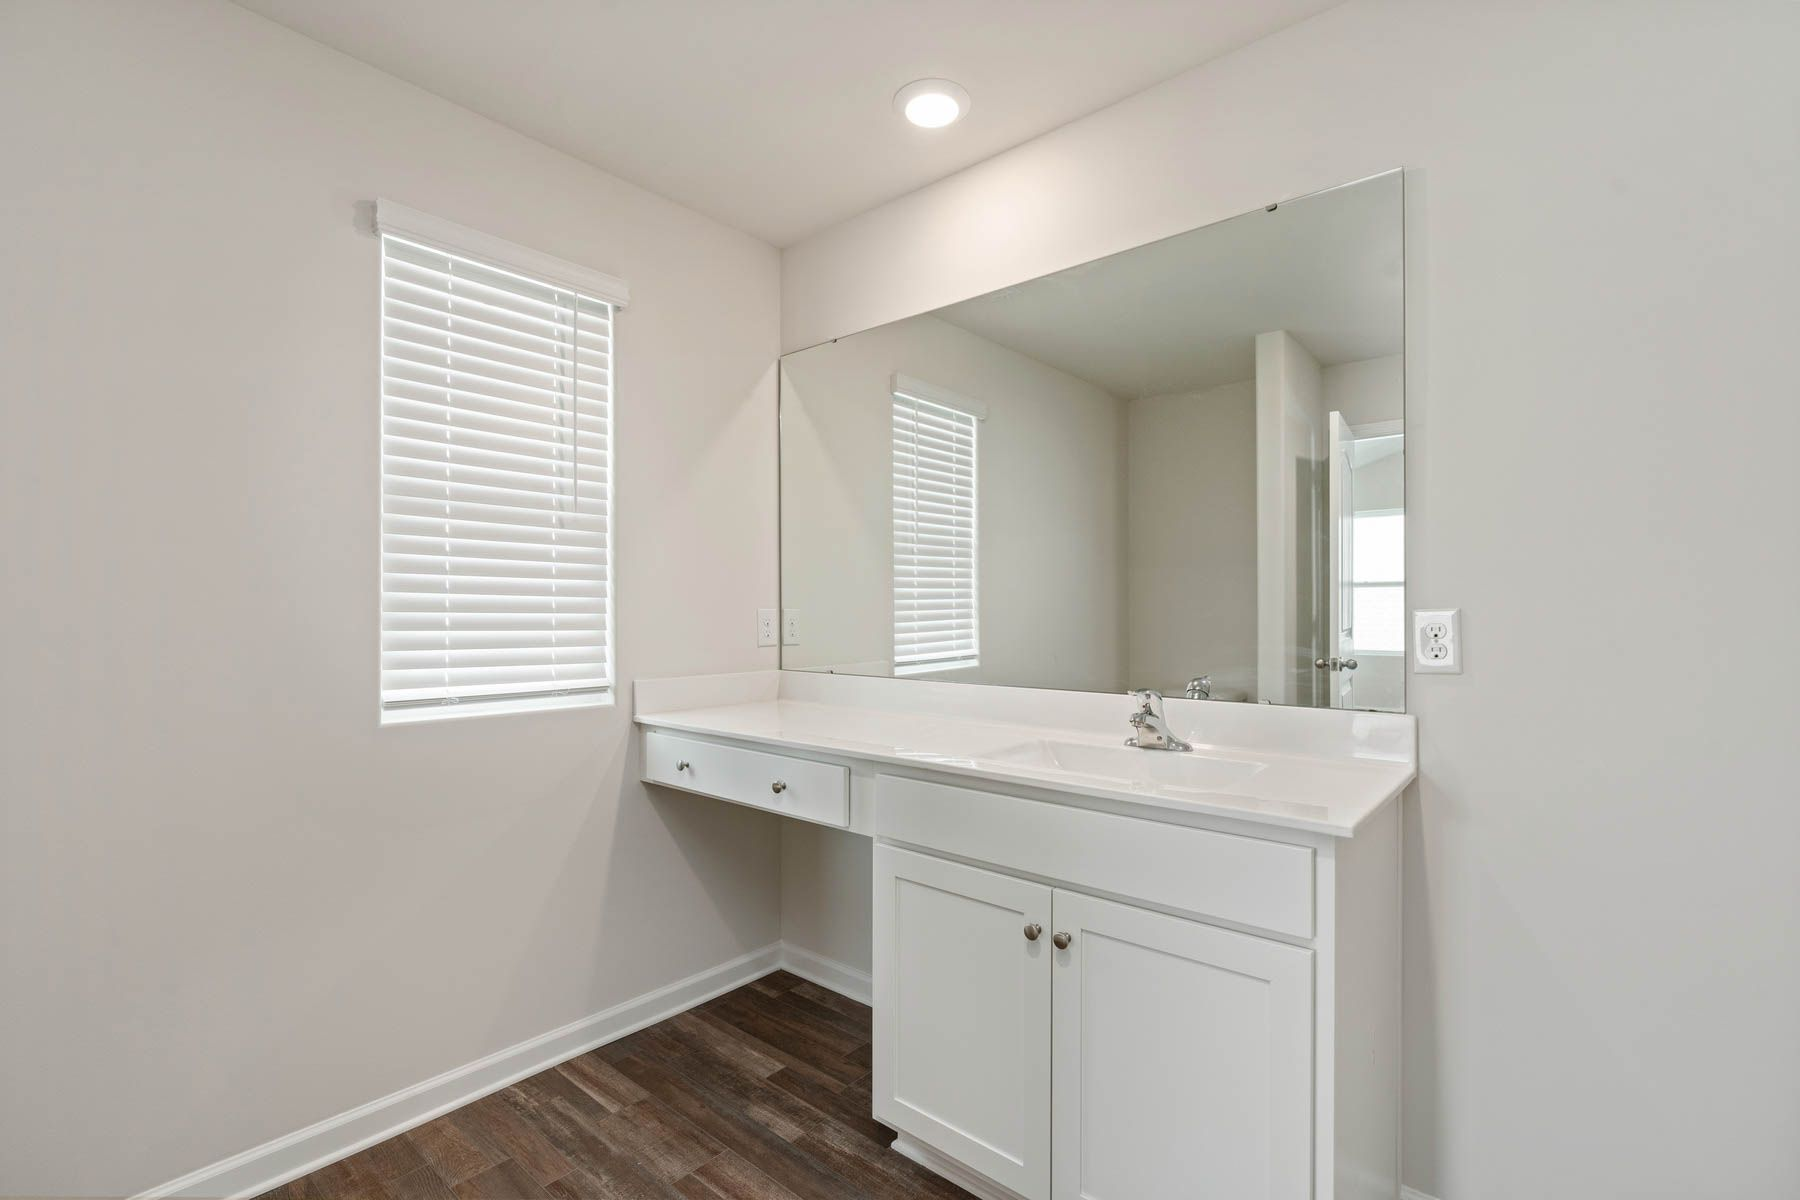 Bathroom featured in the Hartford By LGI Homes in Jacksonville, NC